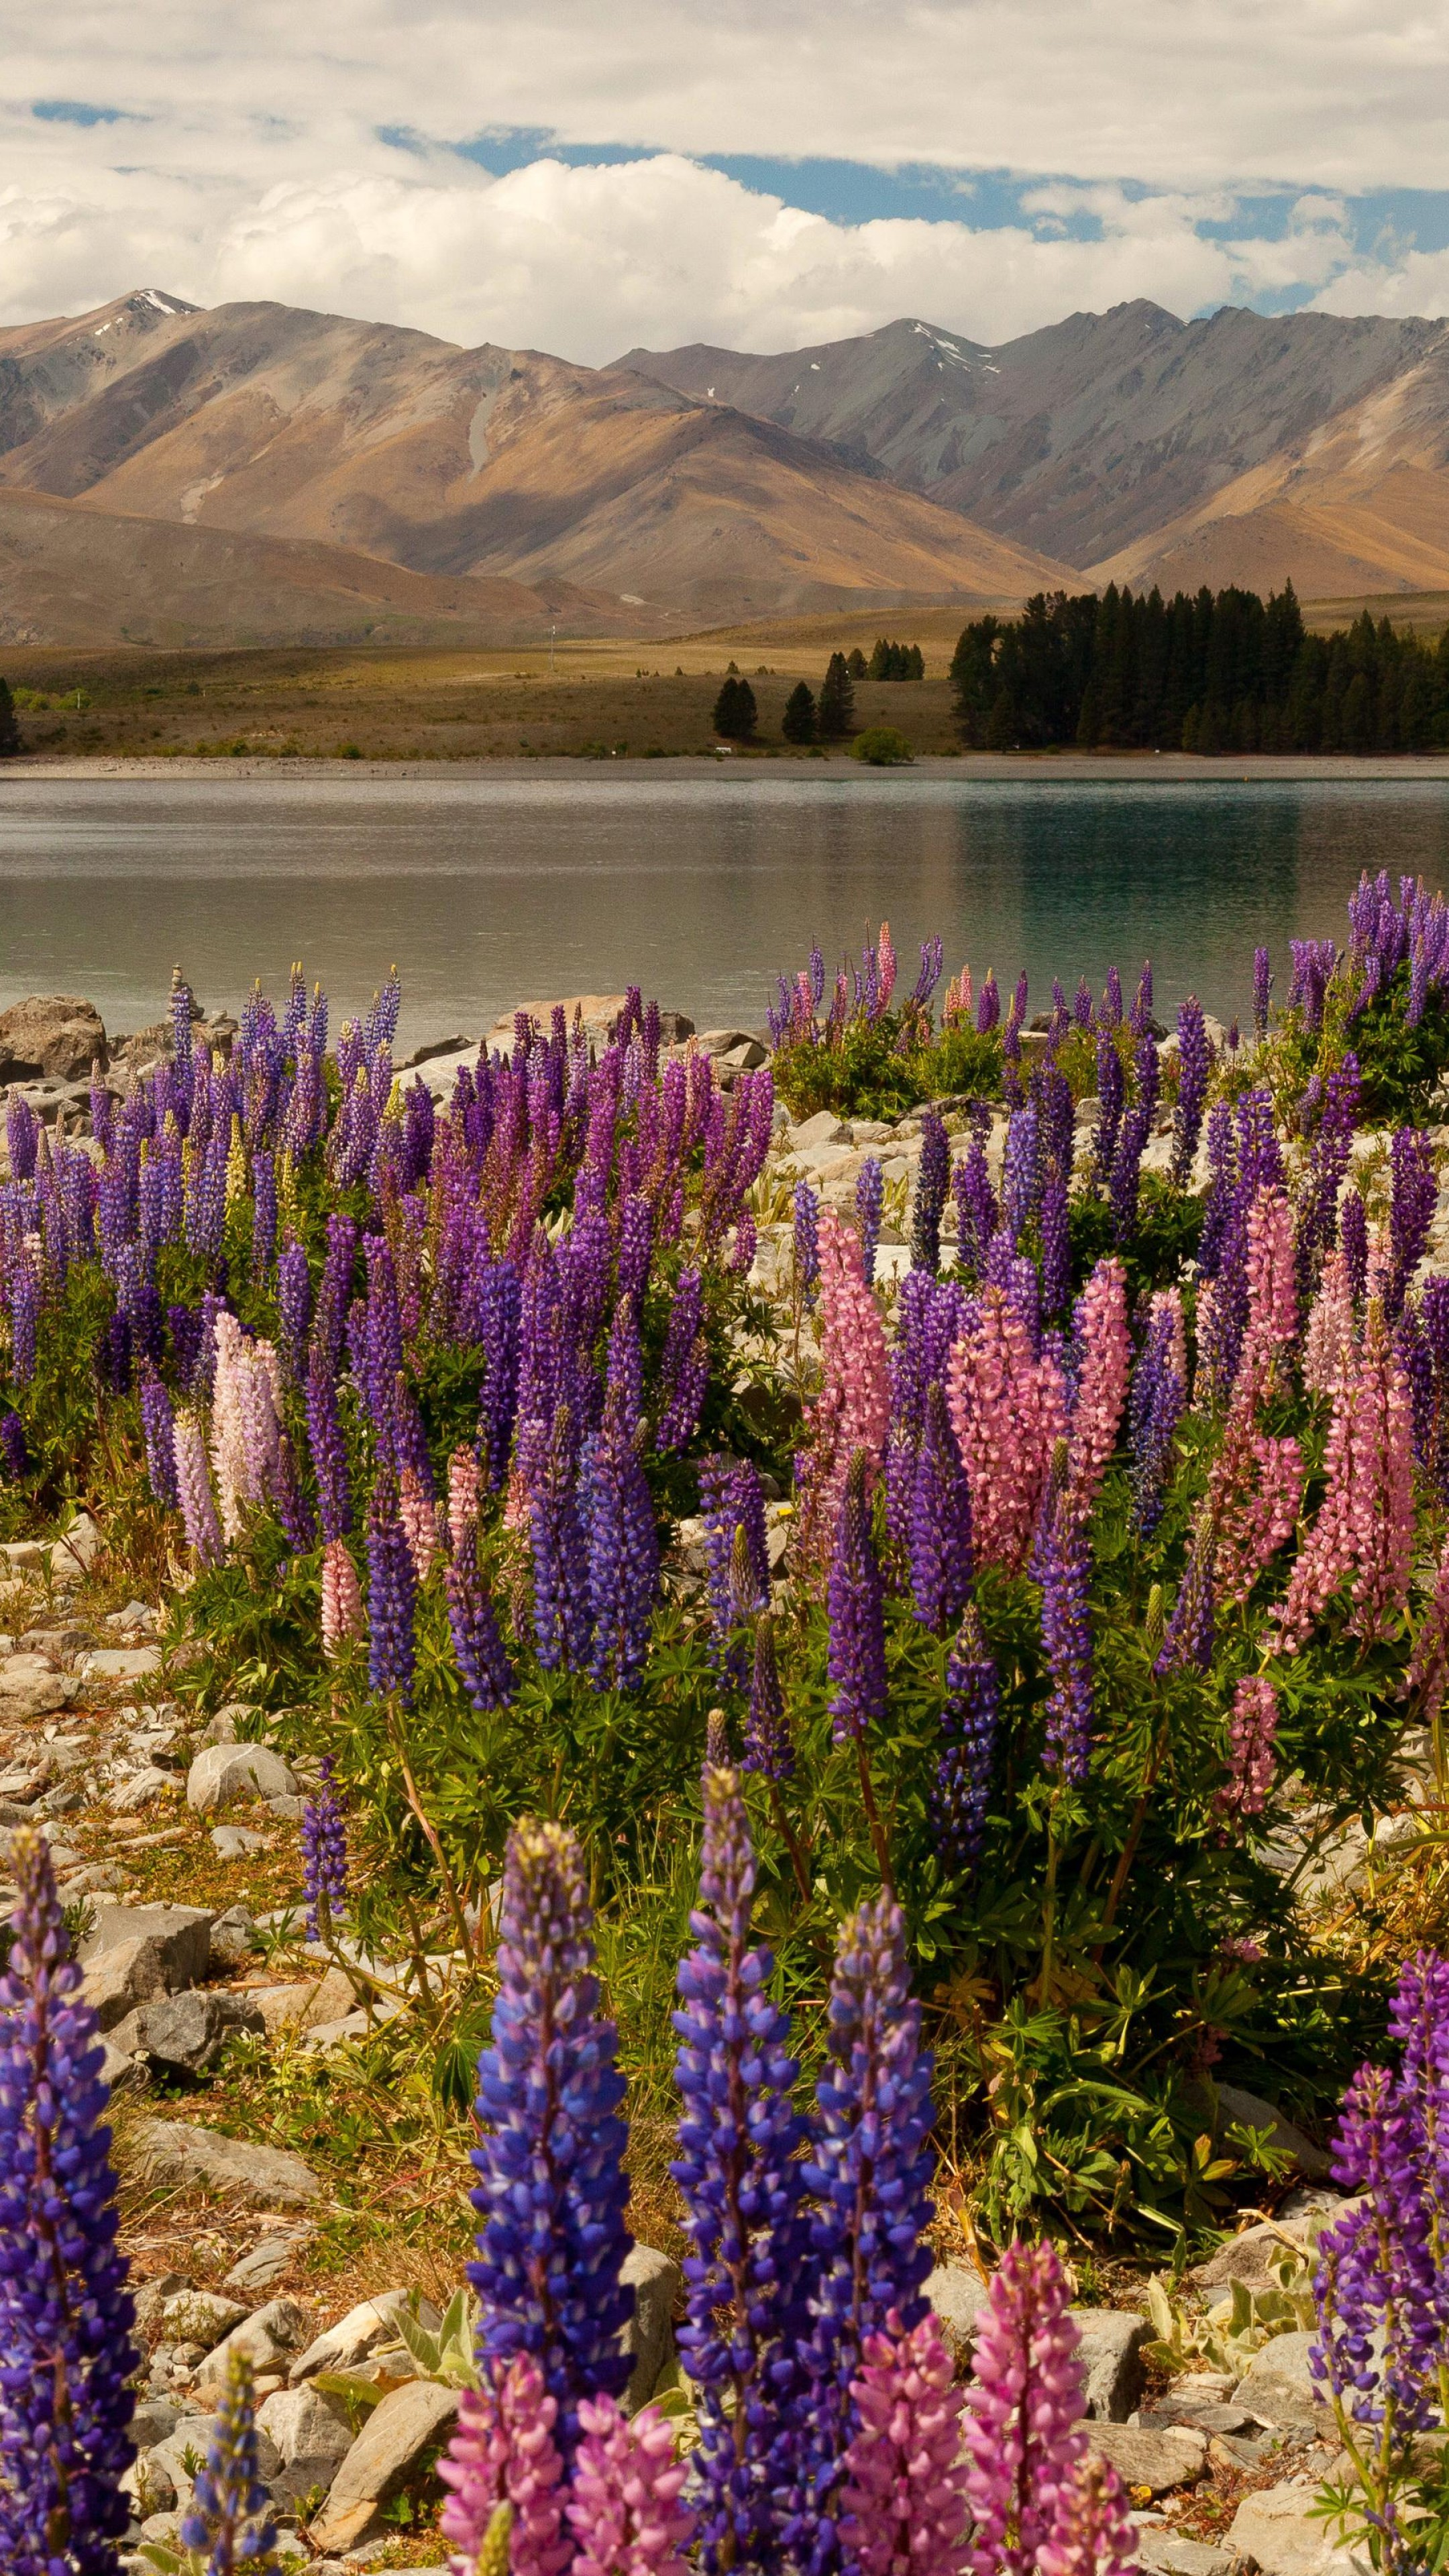 Wallpaper Lavander 5k 4k Wallpaper Lake Tekapo South